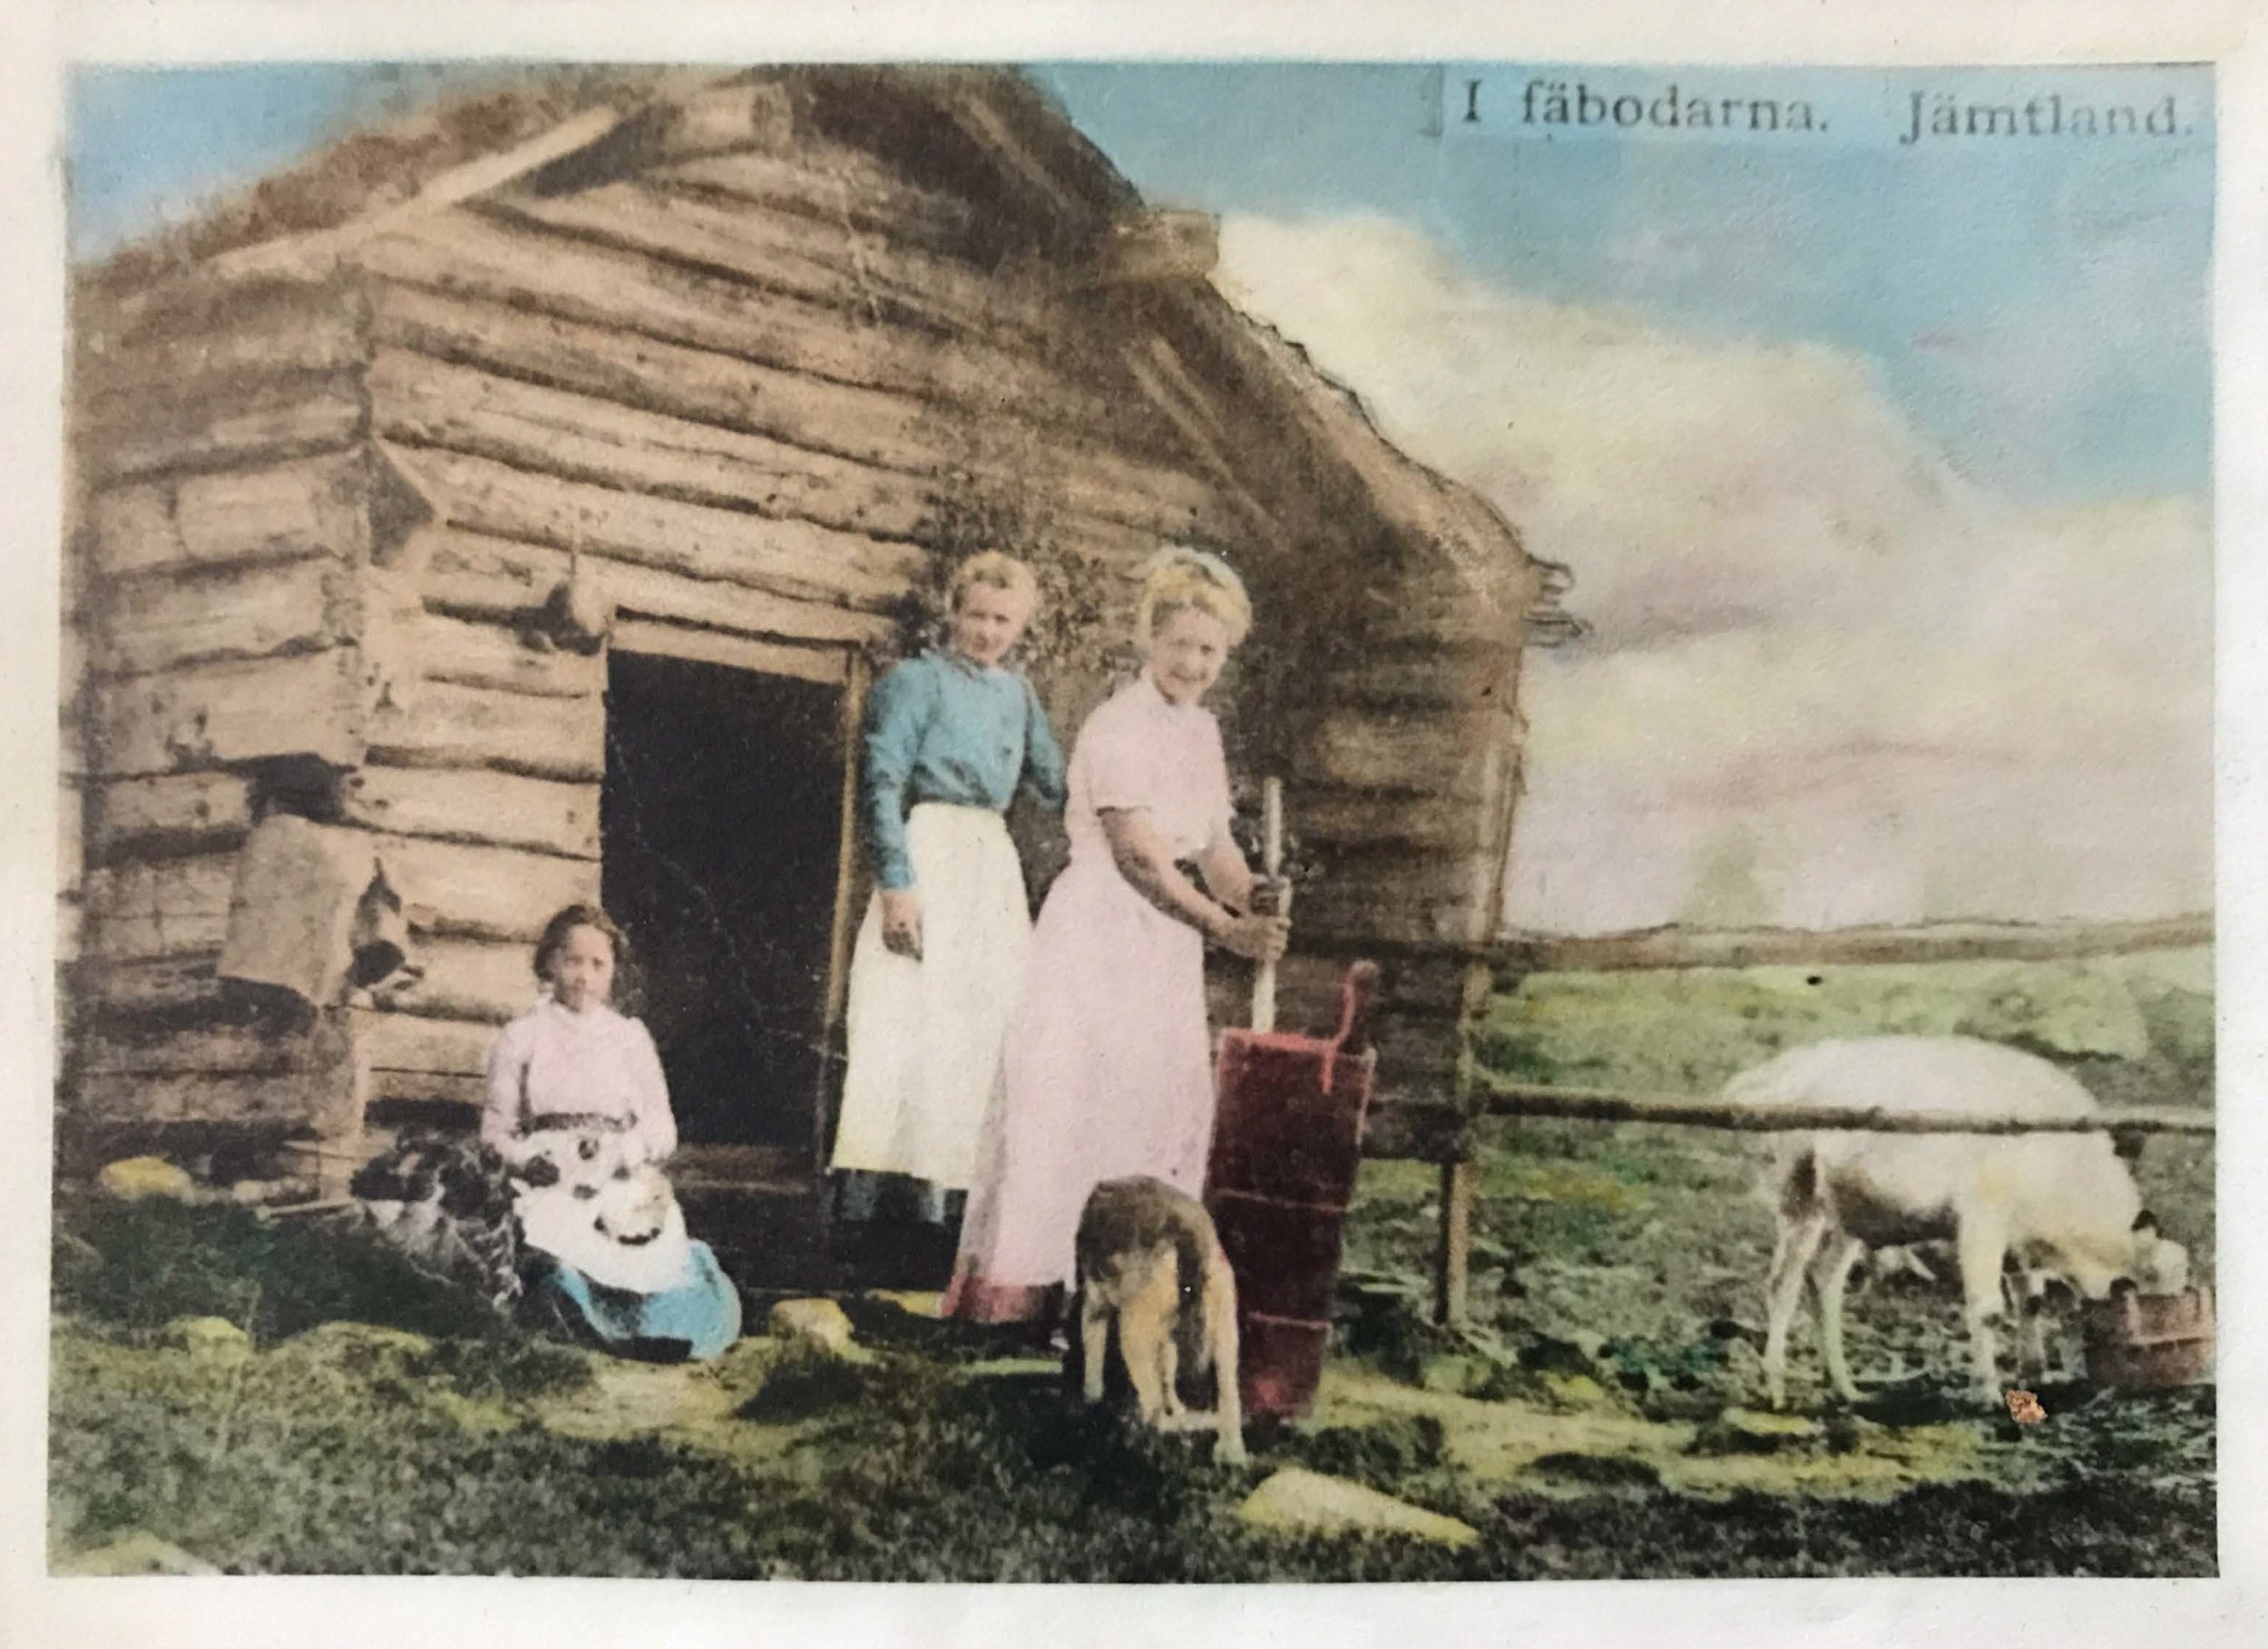 Kristine's great-grandmother Marie Bodin (left) sitting with her sisters in the Fäbodarna on Oviksfjällen in Jämtland Sweden.